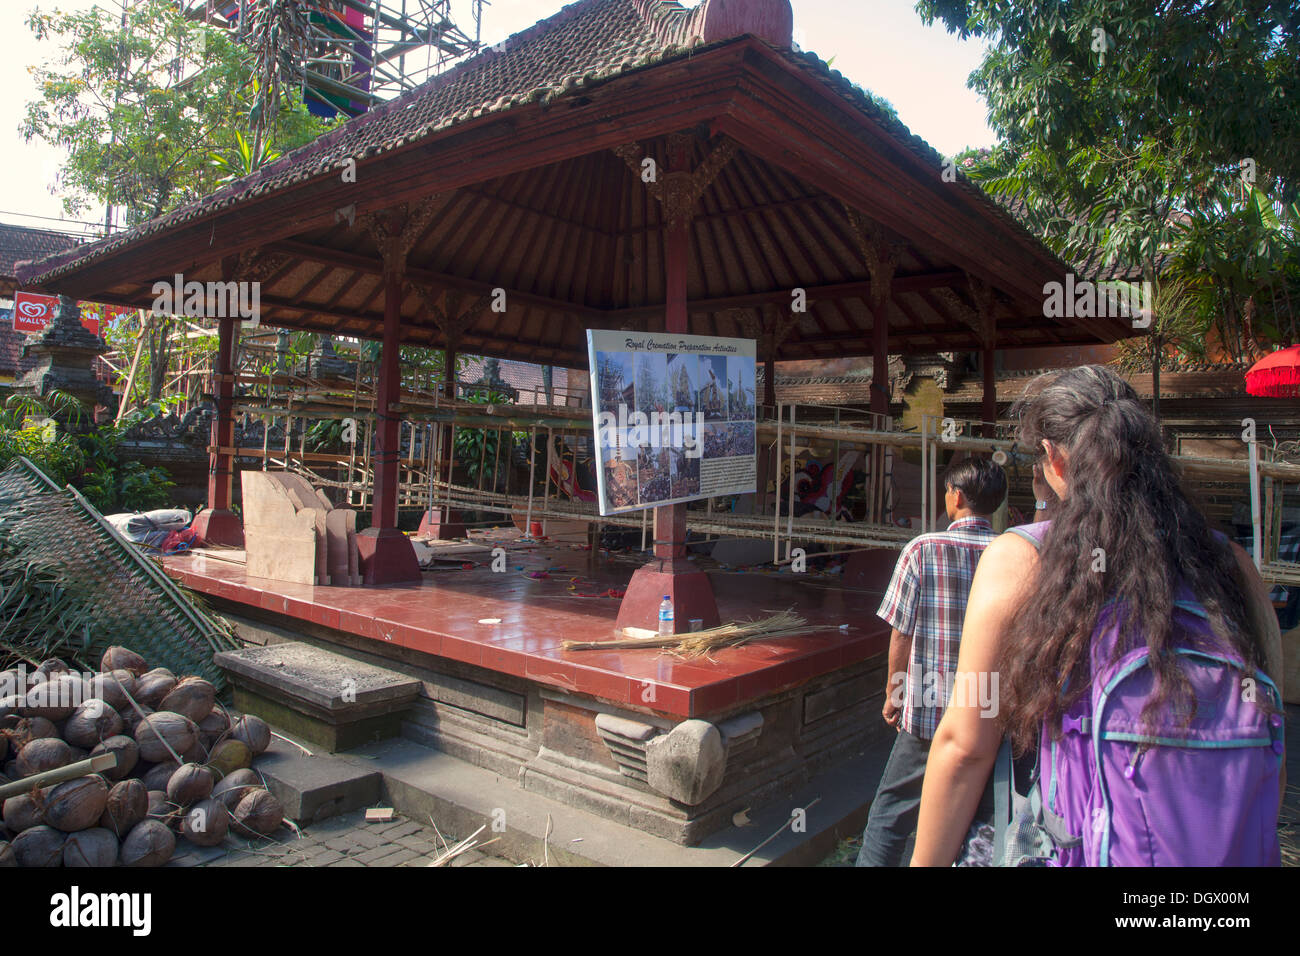 Tourist observe pavilion religious sign Ubud Bali Indonesia Asia construction site wooden make create unfinished works look read - Stock Image